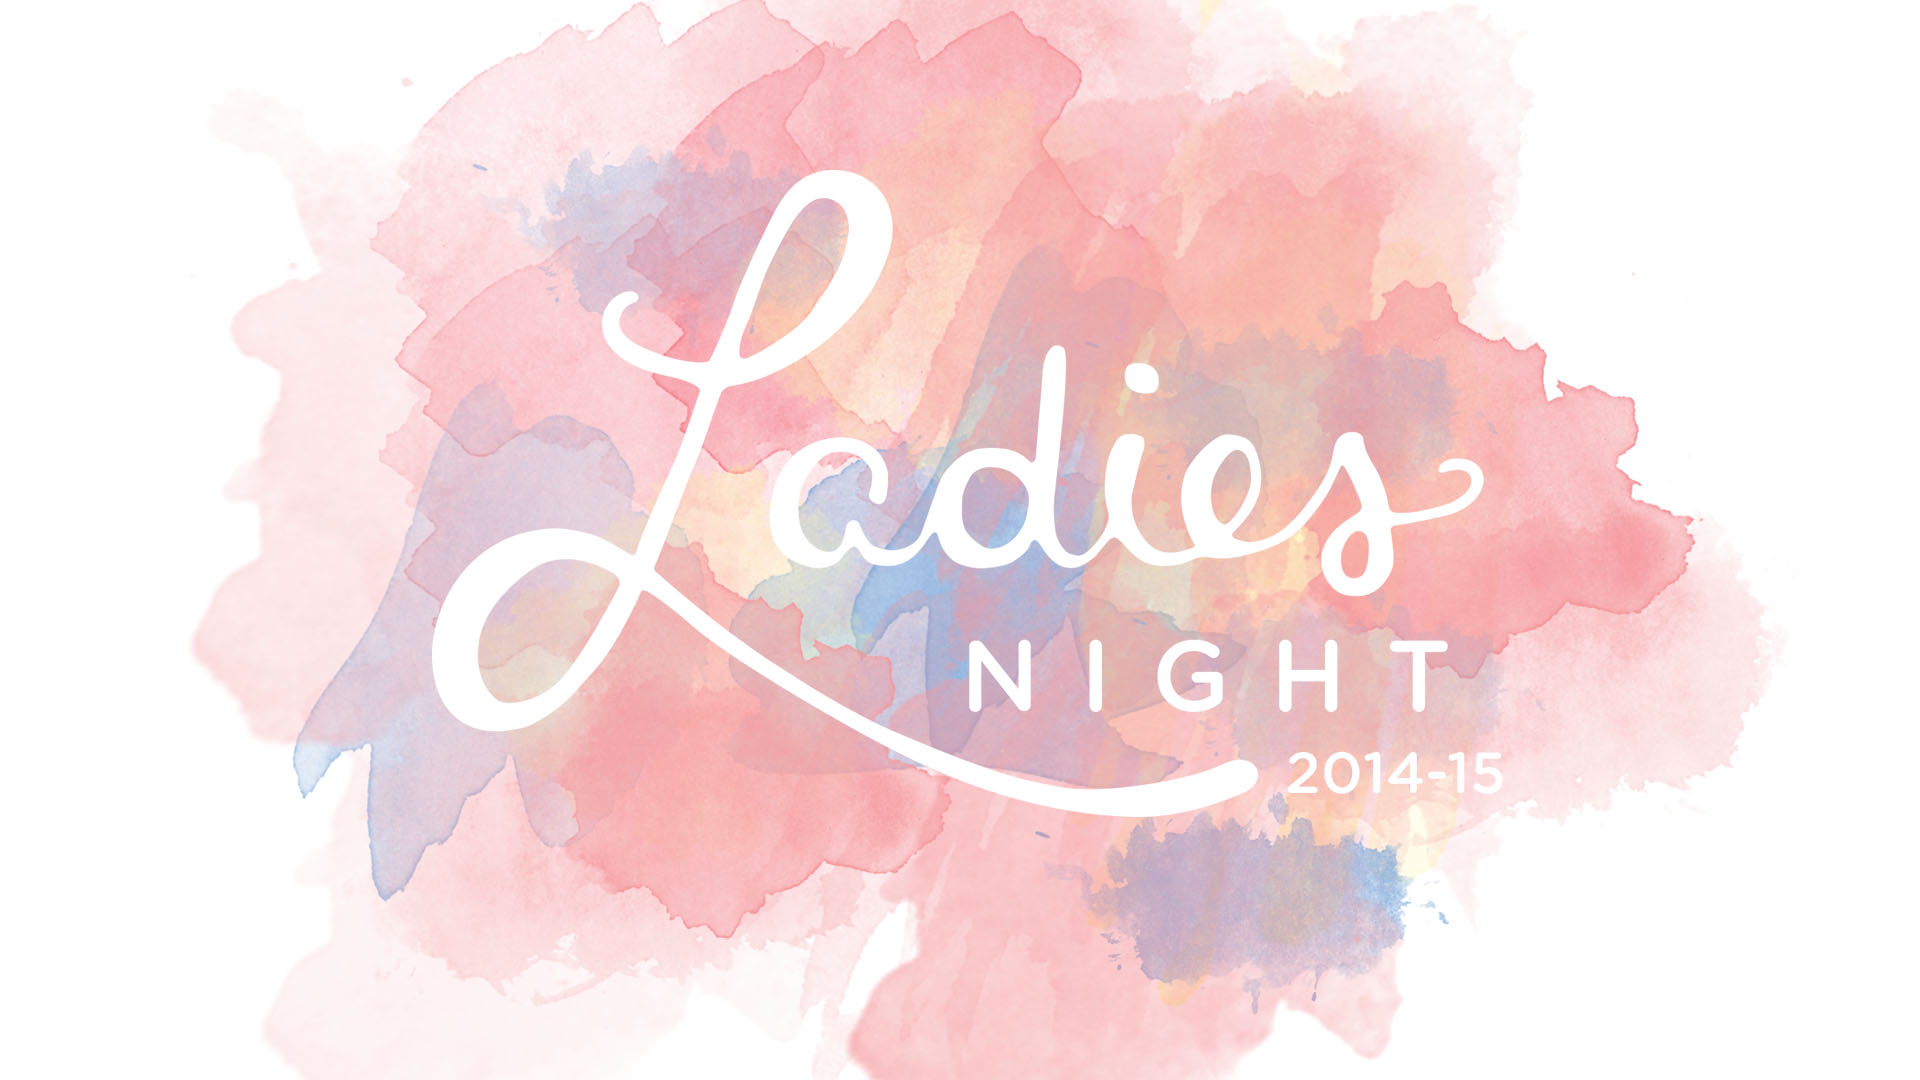 Ladies' Night 2014-15